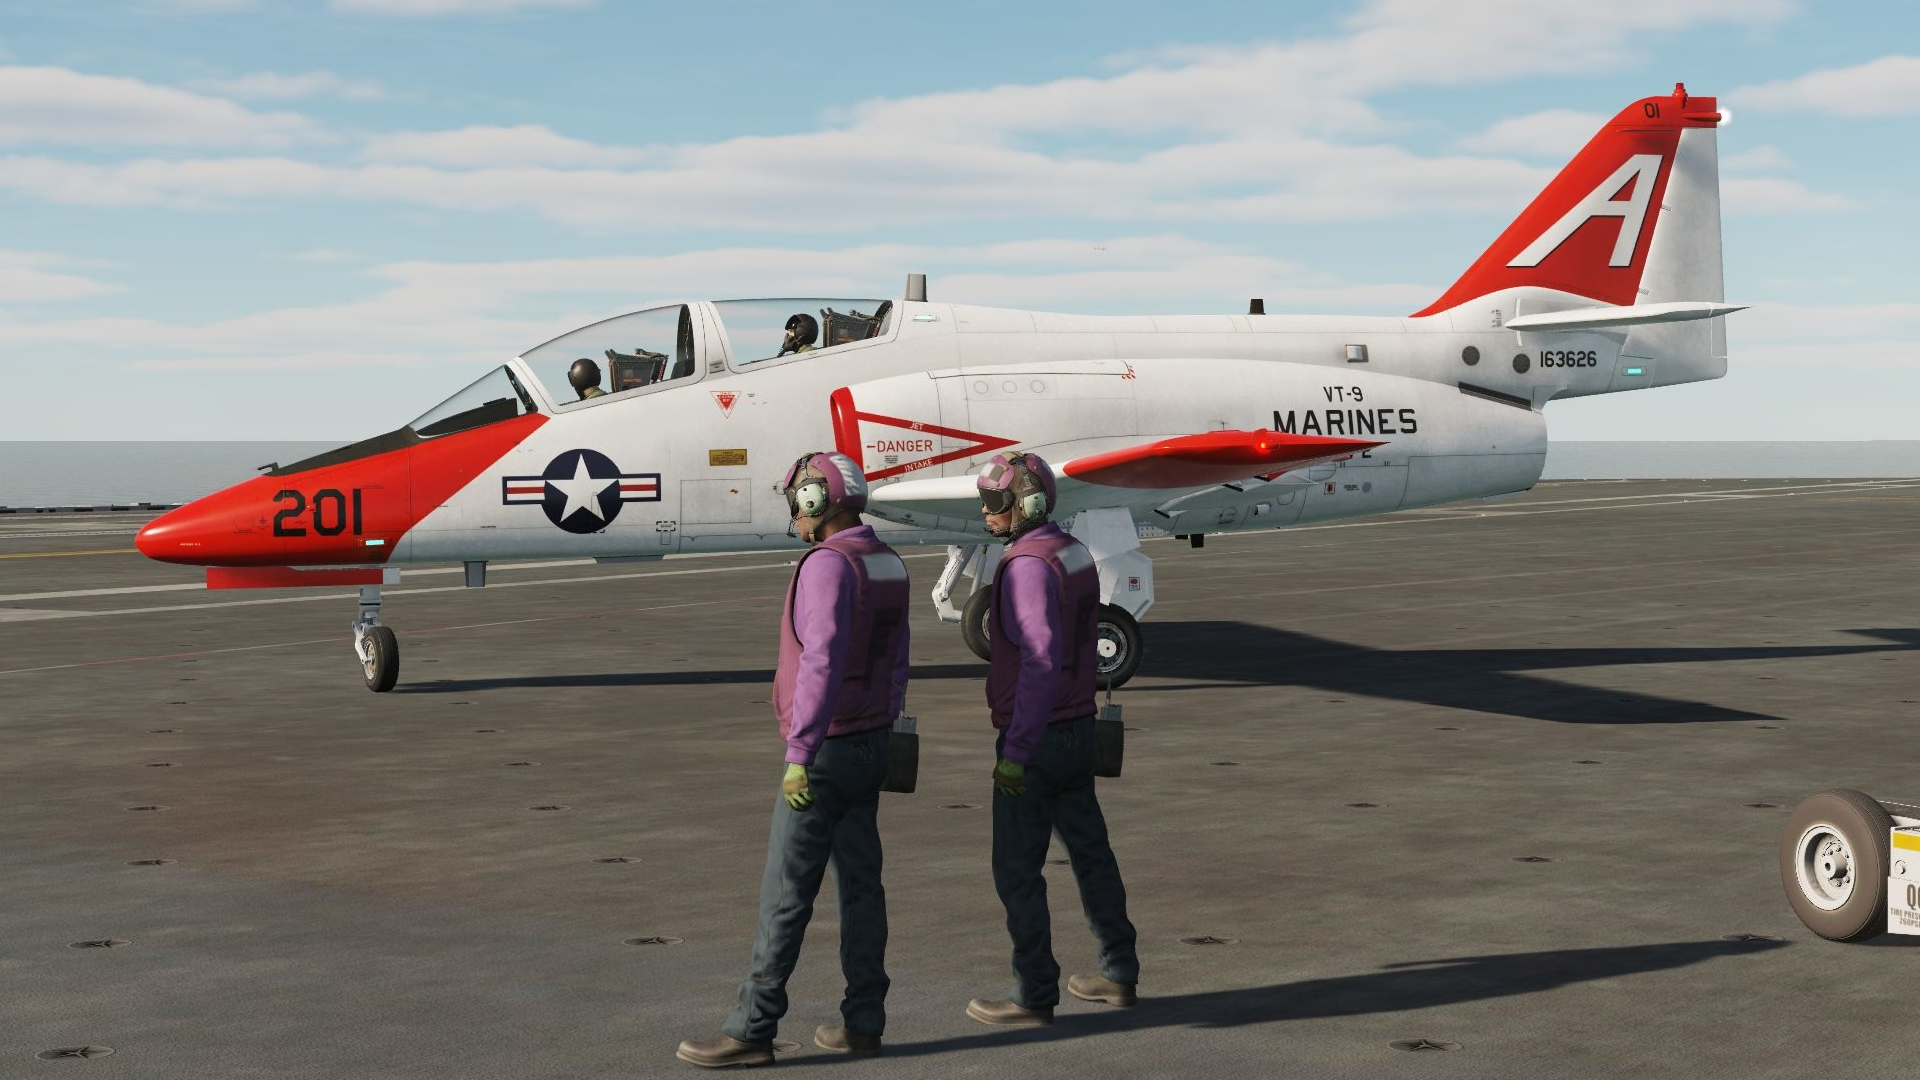 Fictional C-101 USMC Trainer Livery